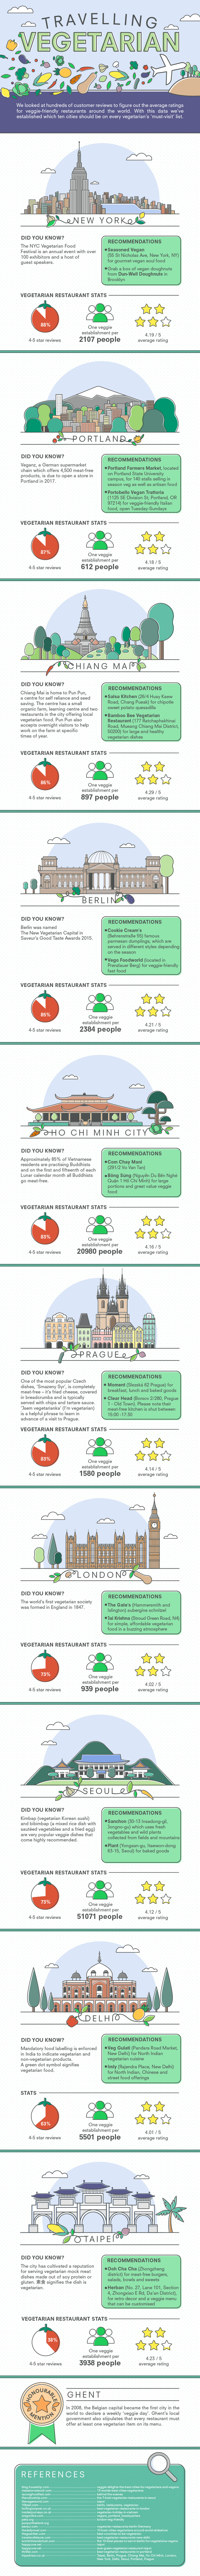 Top Vegan Travel Destinations